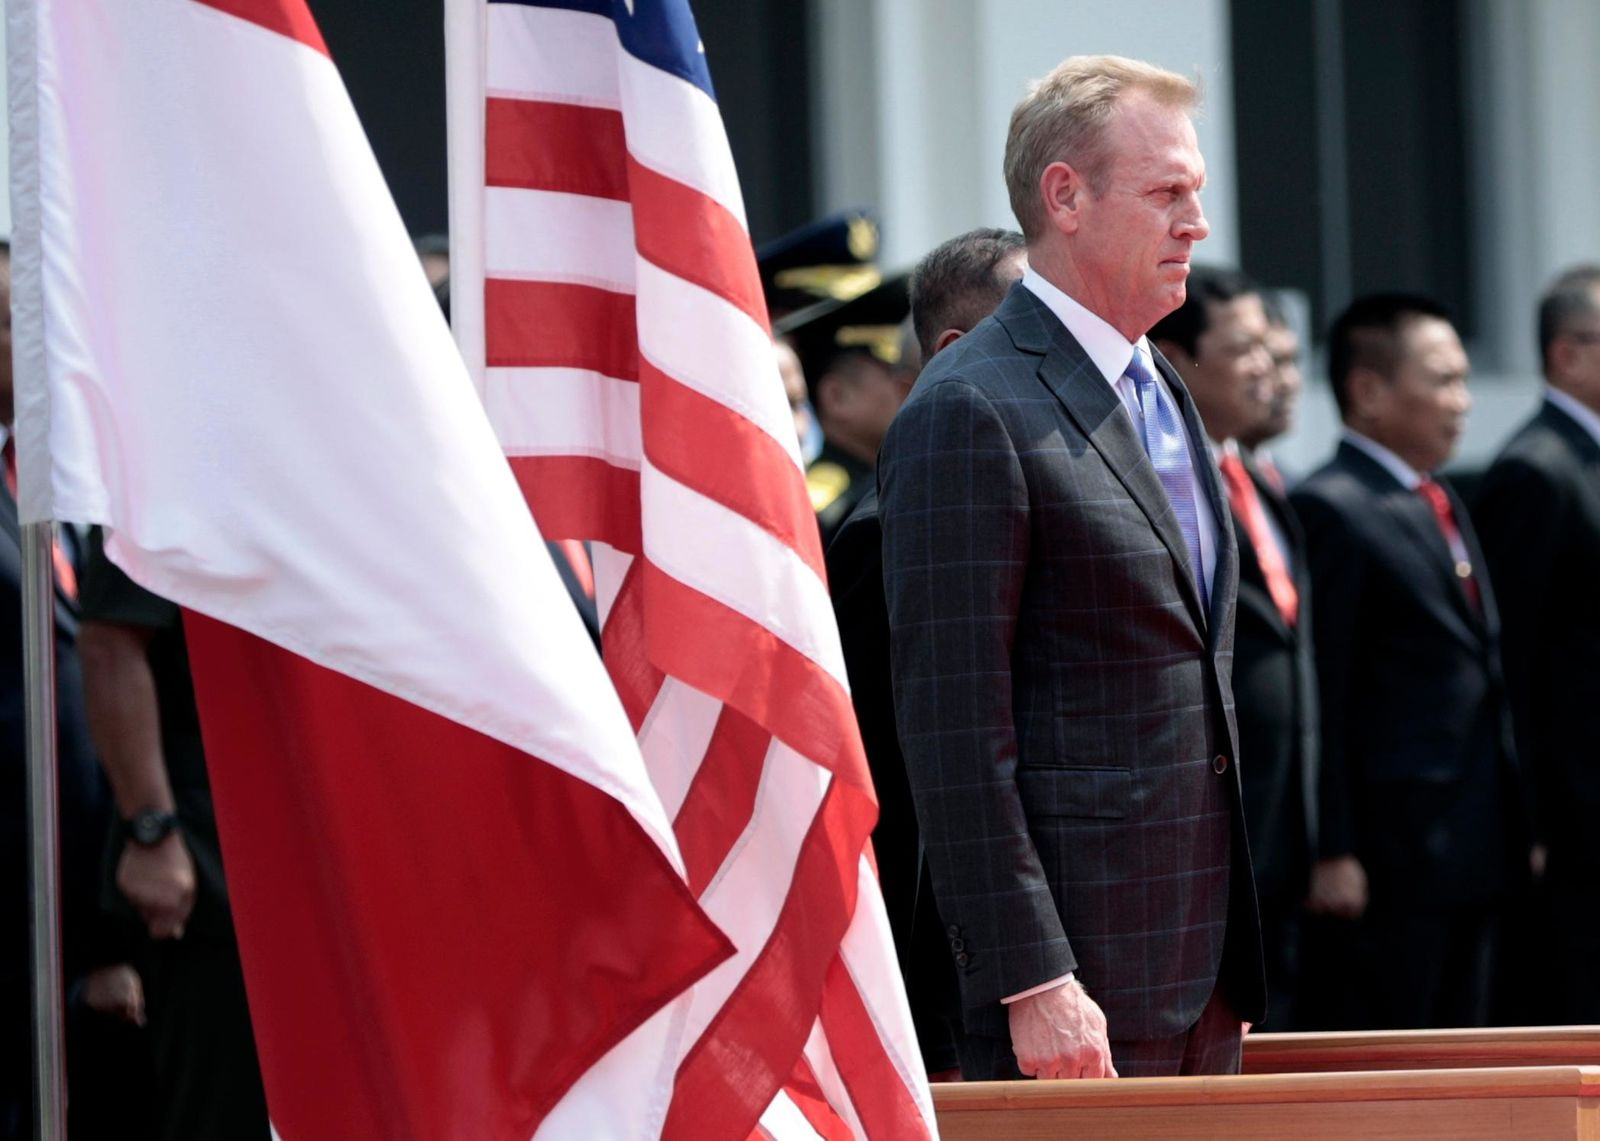 FILE - Acting U.S. Secretary of Defense Patrick Shanahan, center, listens to U.S. and Indonesian national anthems prior to his bilateral meeting with Indonesian Defense Minister Ryamizard Ryacudu in Jakarta, Indonesia, Thursday, May 30, 2019. (AP Photo/Dita Alangkara)